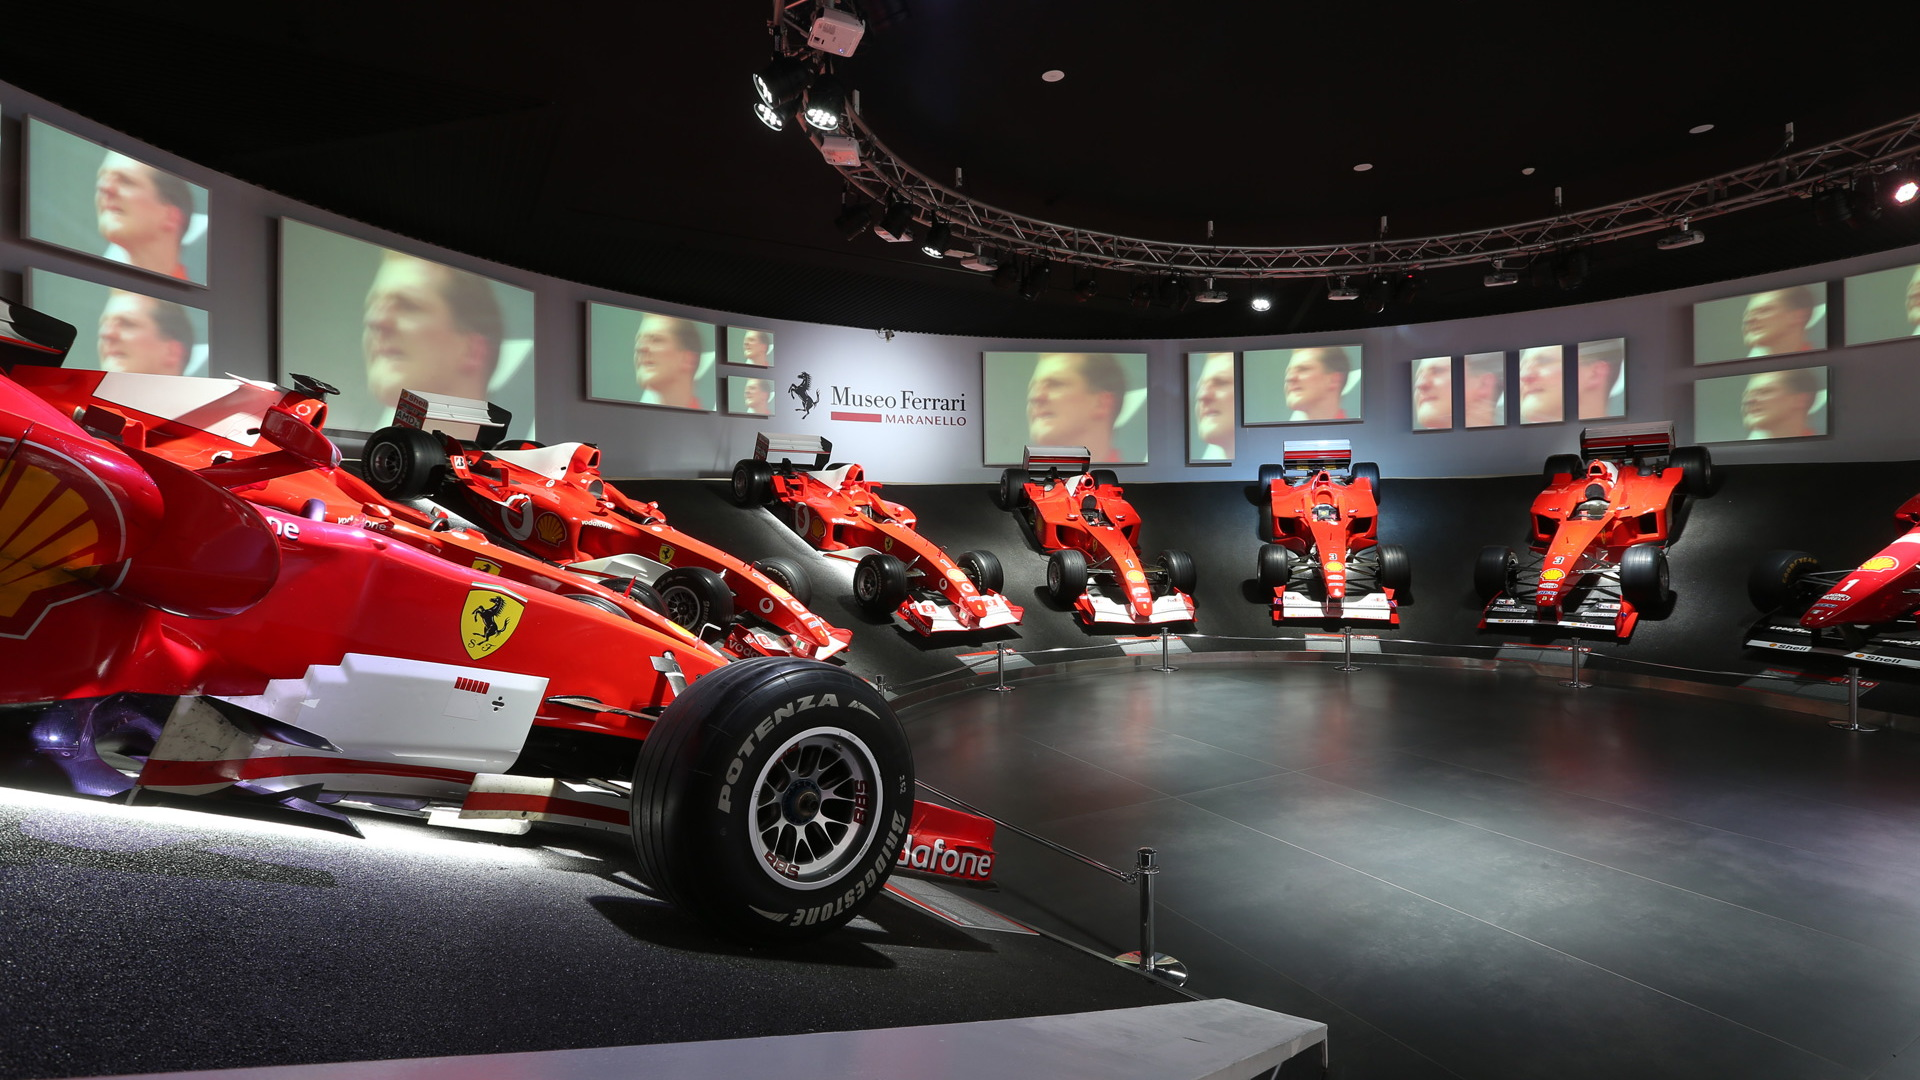 Michael 50 - Michael Schumacher exhibition at the Ferrari Museum